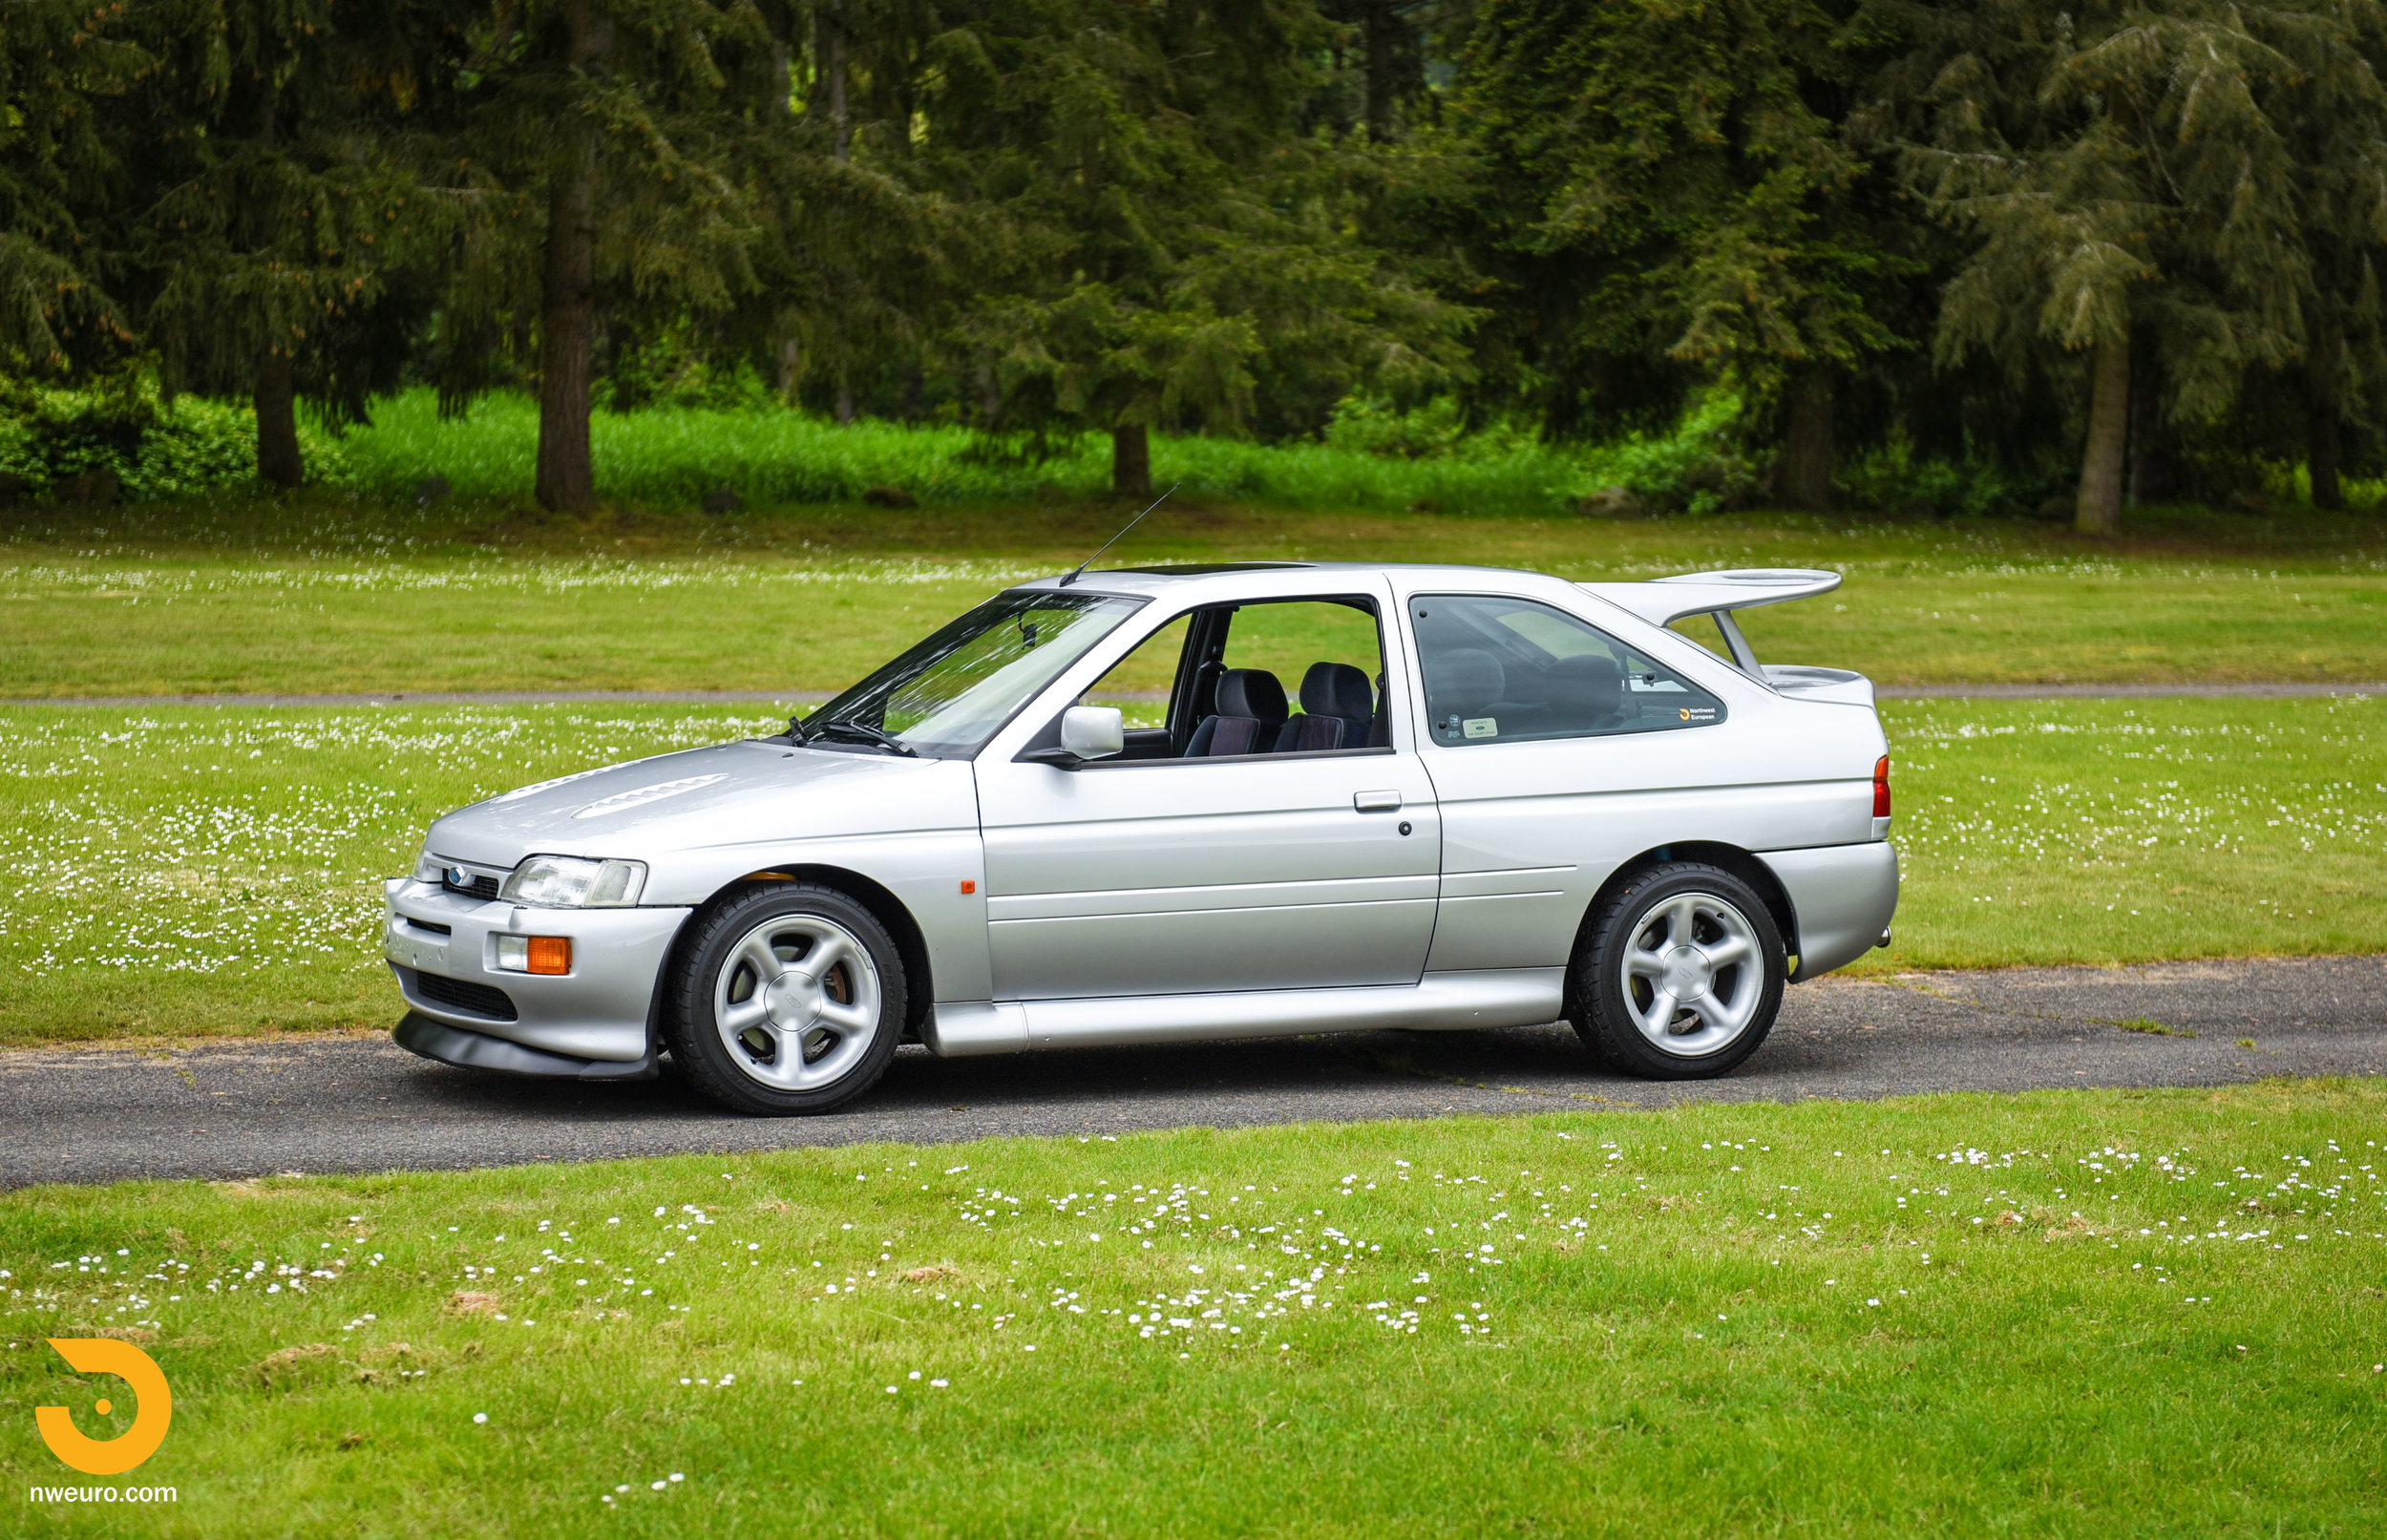 1995 Ford Escort Cosworth RS Silver-13.jpg